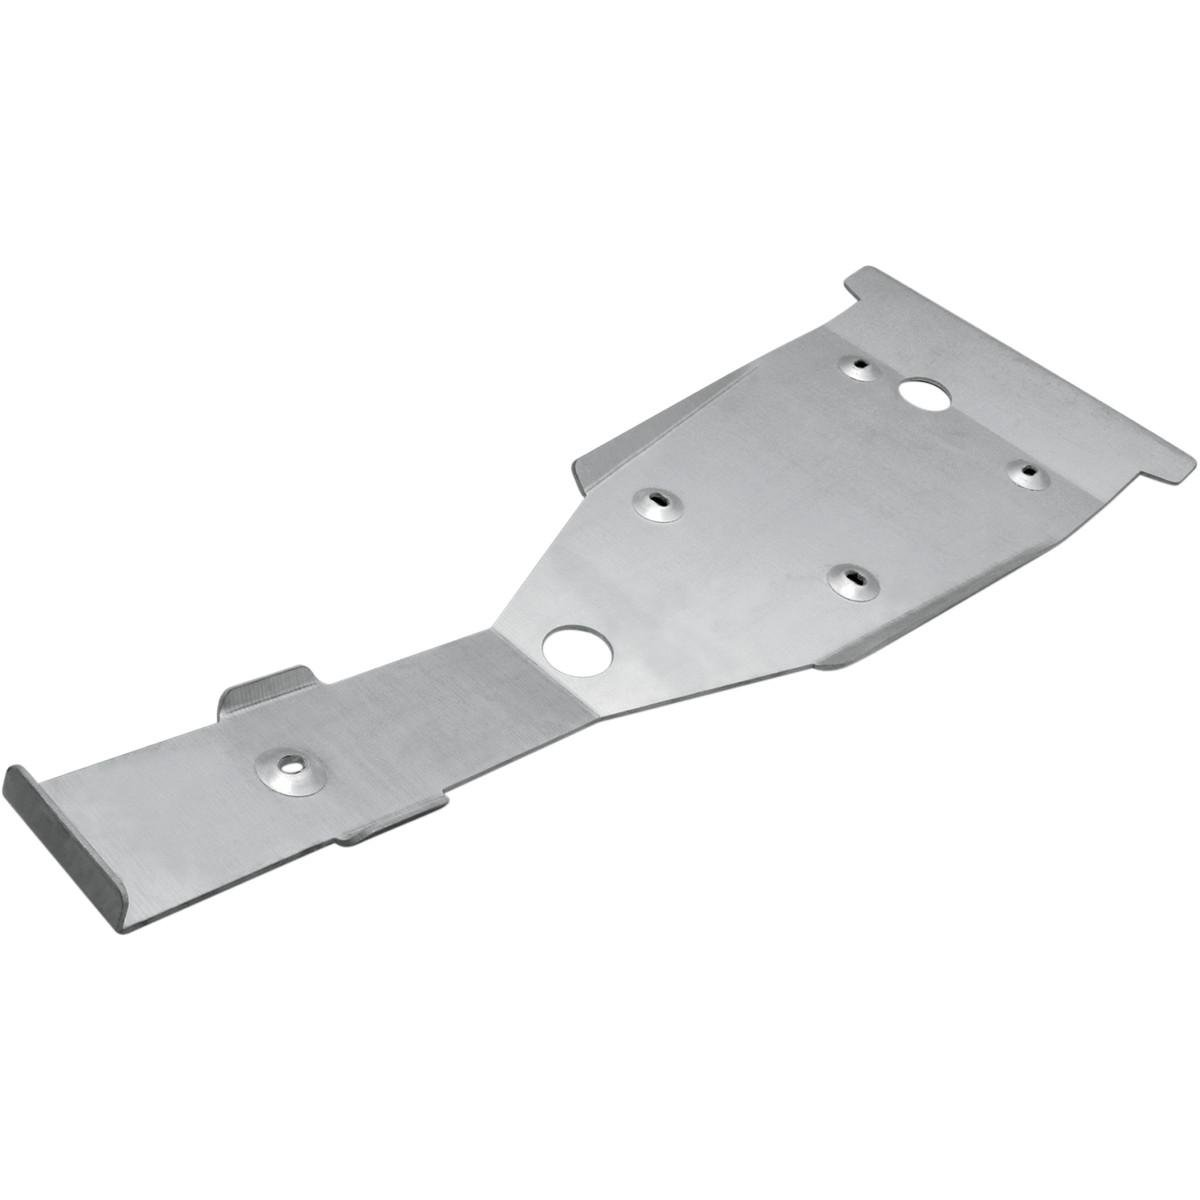 Motorsport Products Frame Glide Plate 83-1101 by Motorsport Products